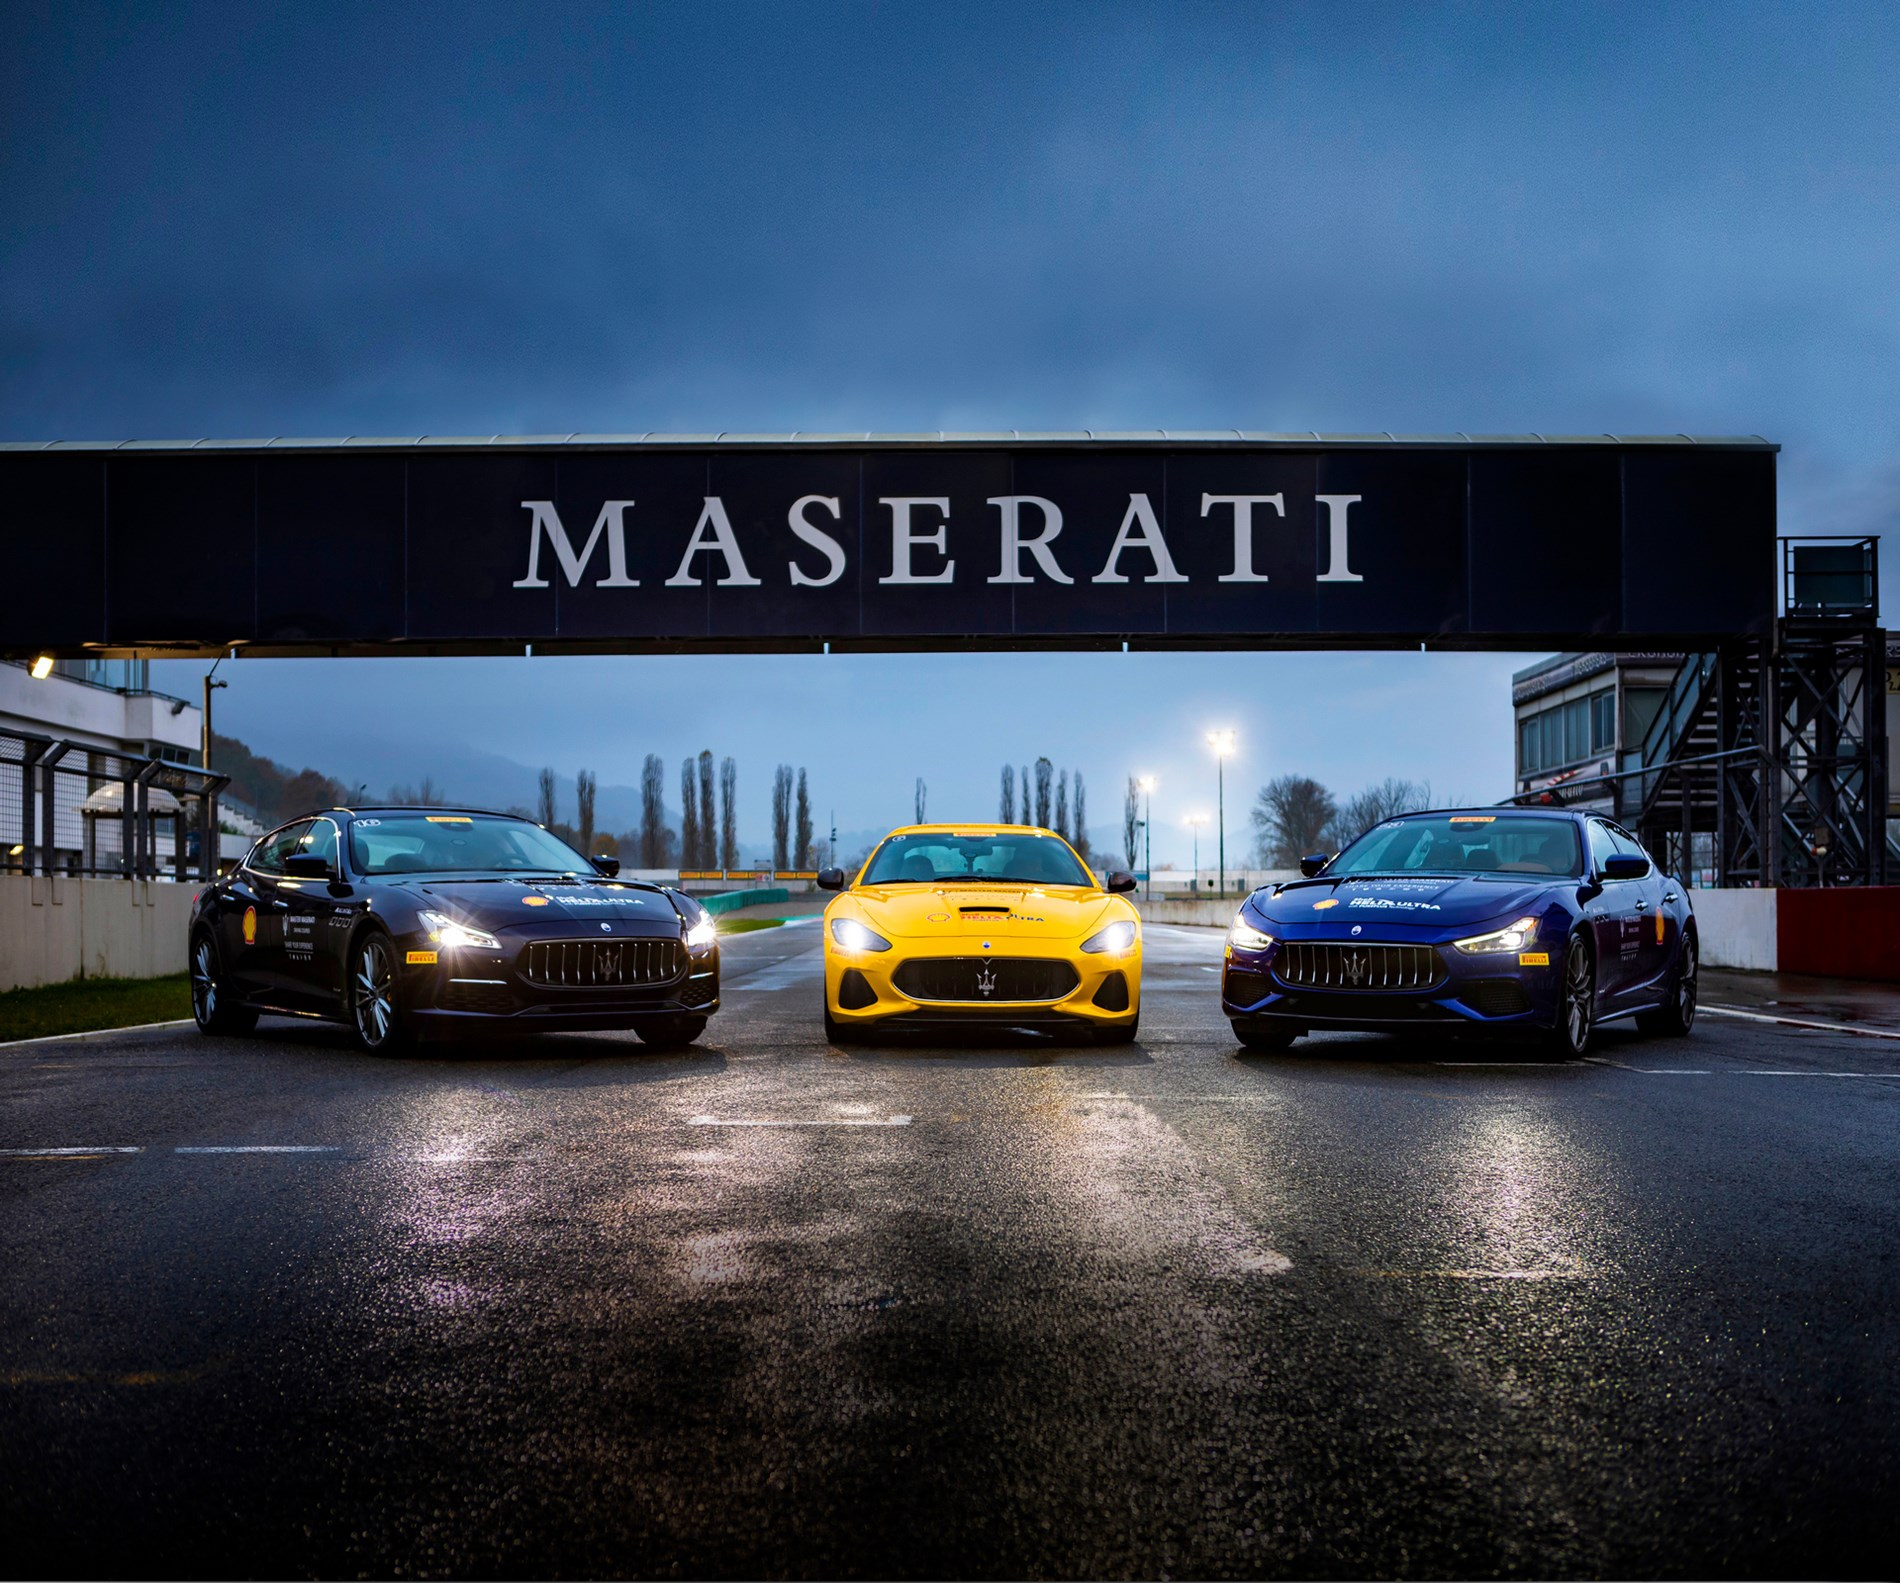 The new season of Master Maserati programme gets underway